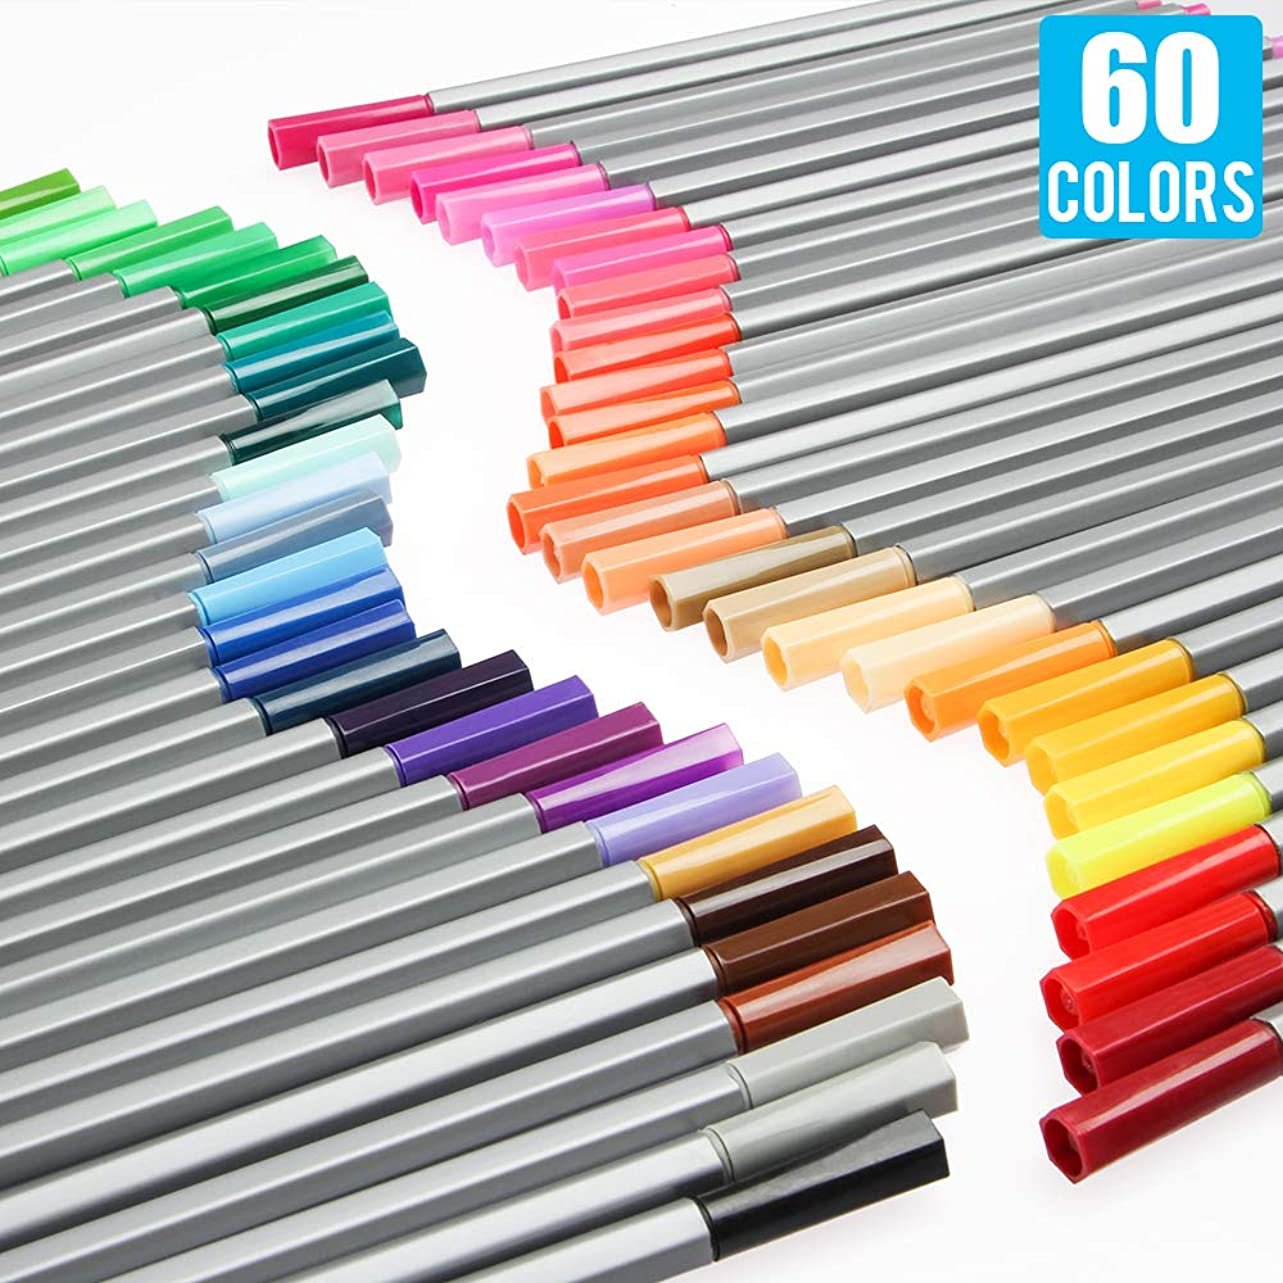 [60 Colors] 0.4 mm Micro-Pen Fineliner Ink Pens, Super Fine Point Liner Pen,Multi-Liner, Sketching, Anime,Artist Illustrating Drawing,Technical Drawing,Office Documents ngvkjo850